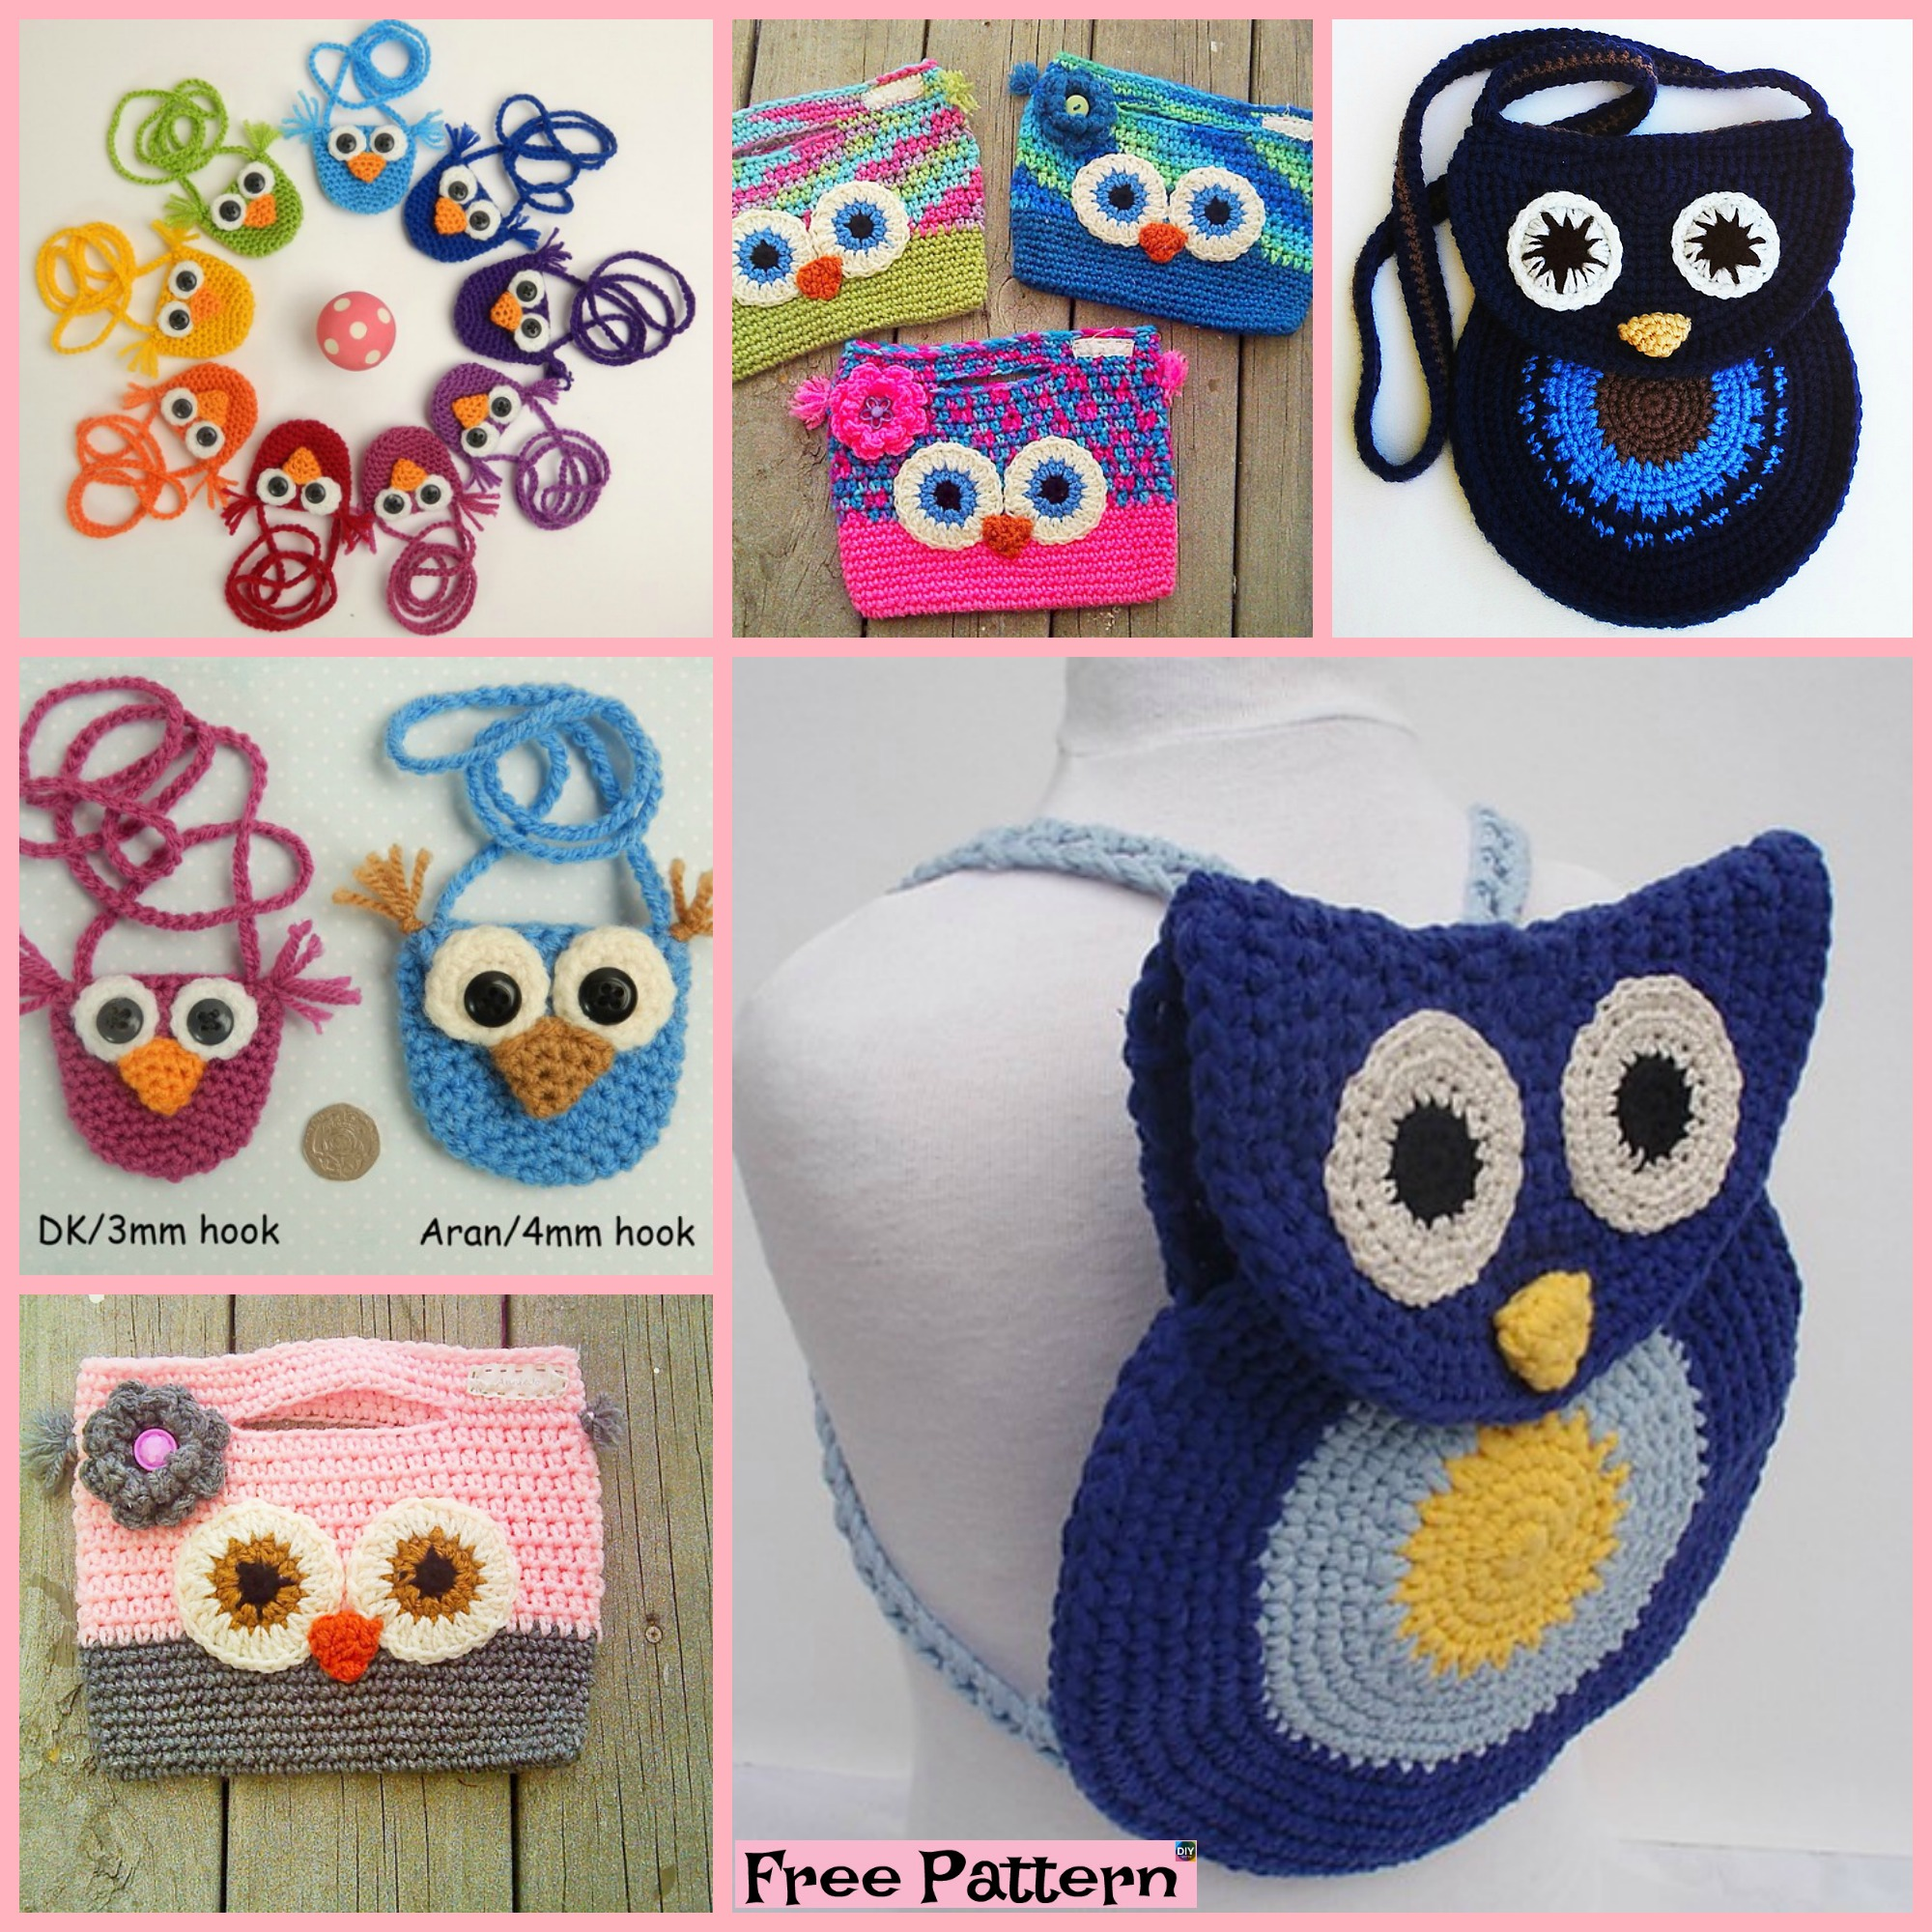 diy4ever-Adorable Crochet Owl Bag - Free Patterns